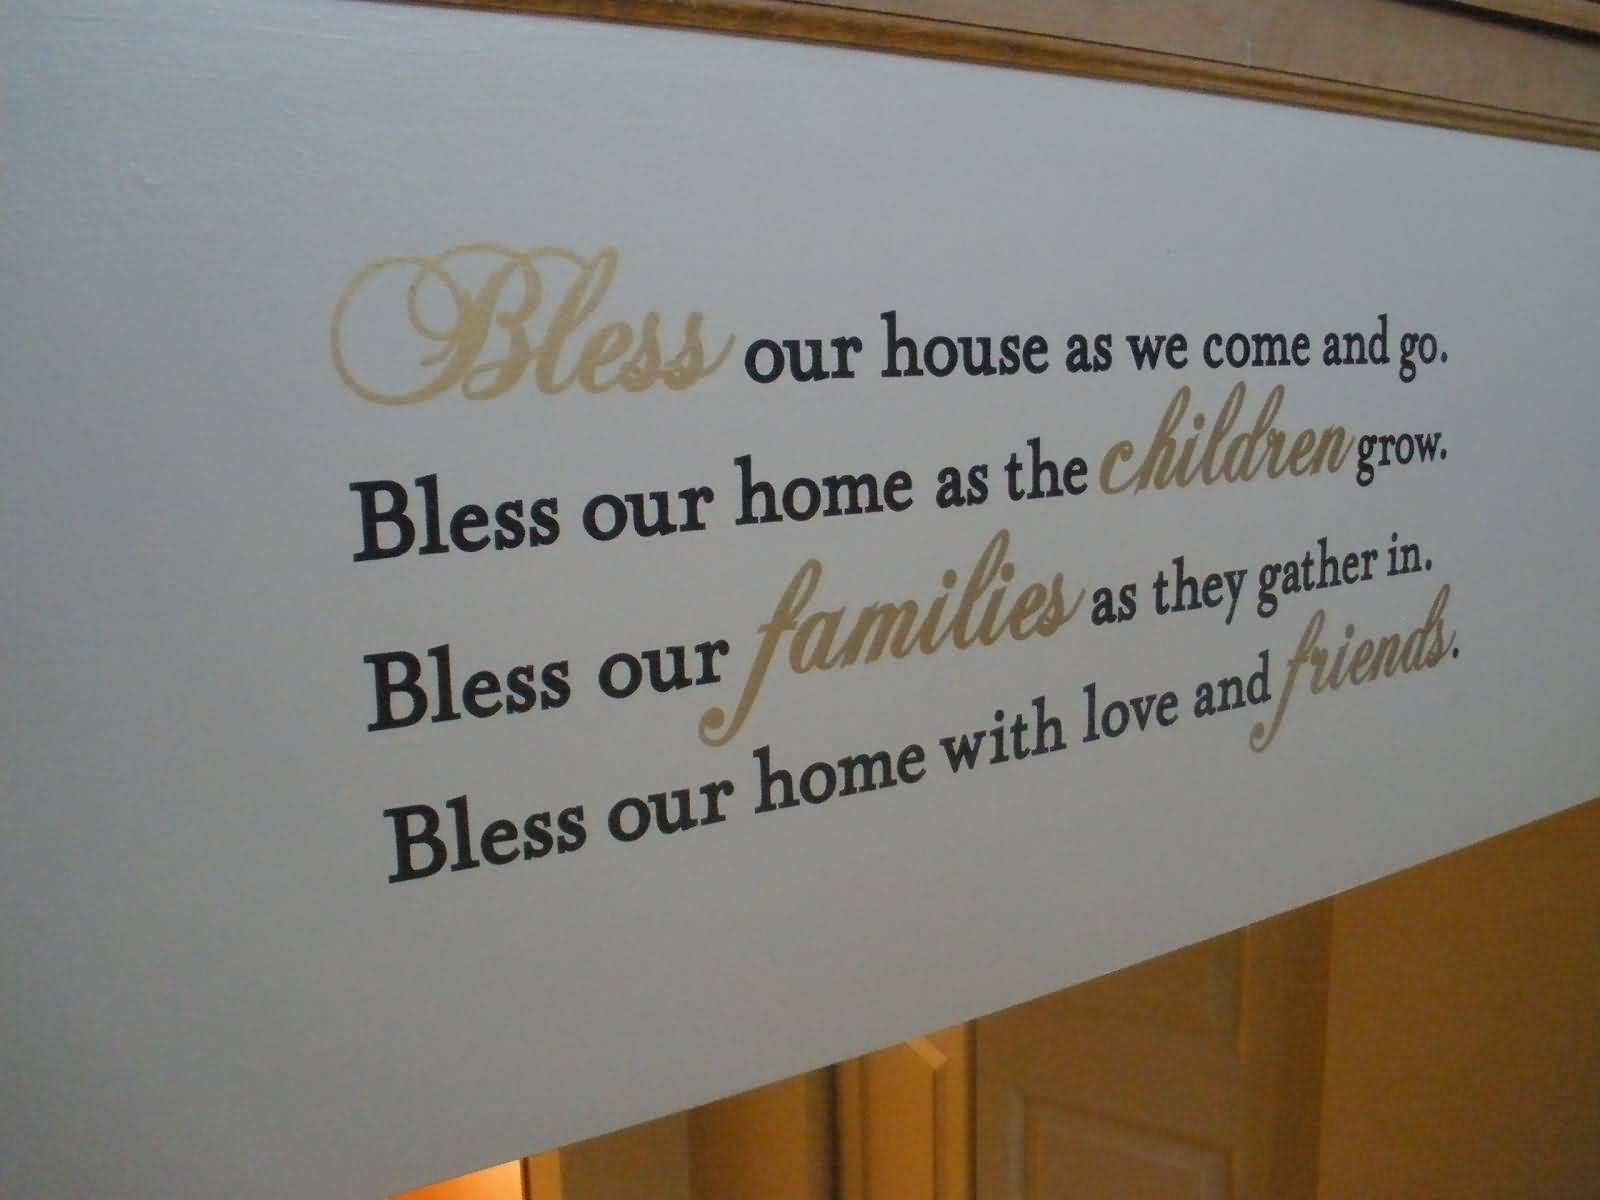 Love For Childrens Quotes Bless Our House As We Come And Gobless Our Home As The Children